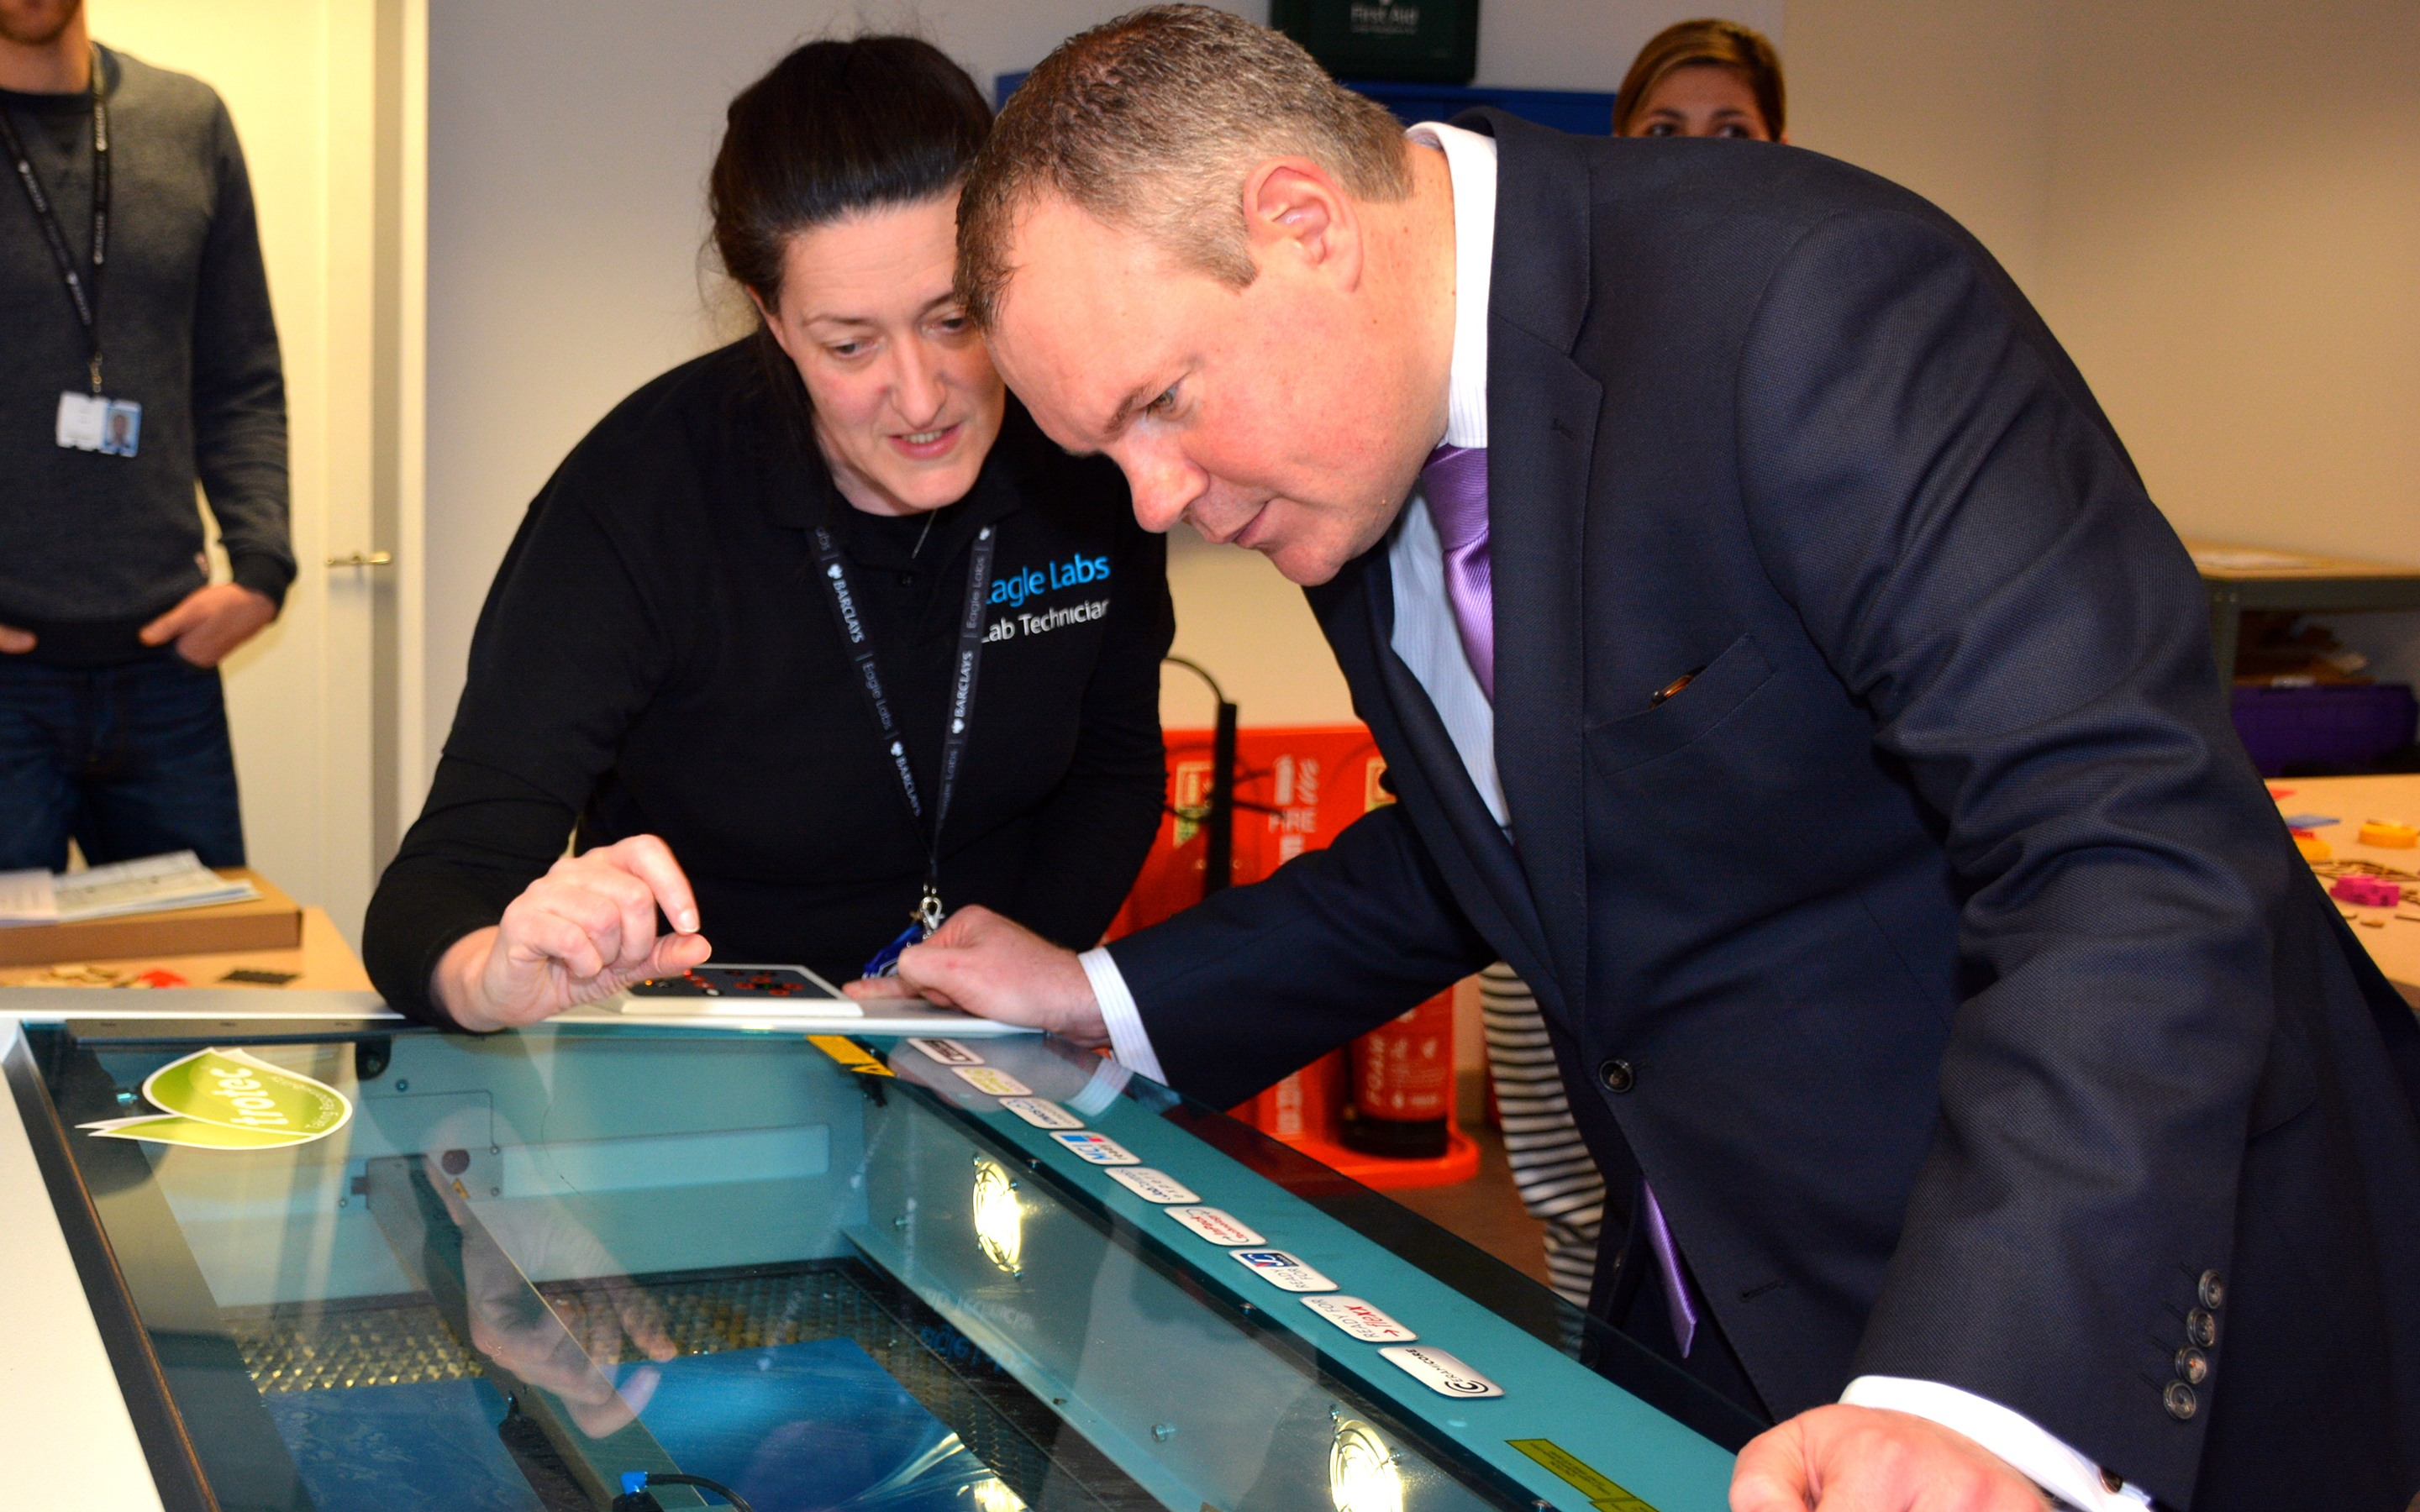 Conor Burns MP using the Eagle Lab's laser cutter.